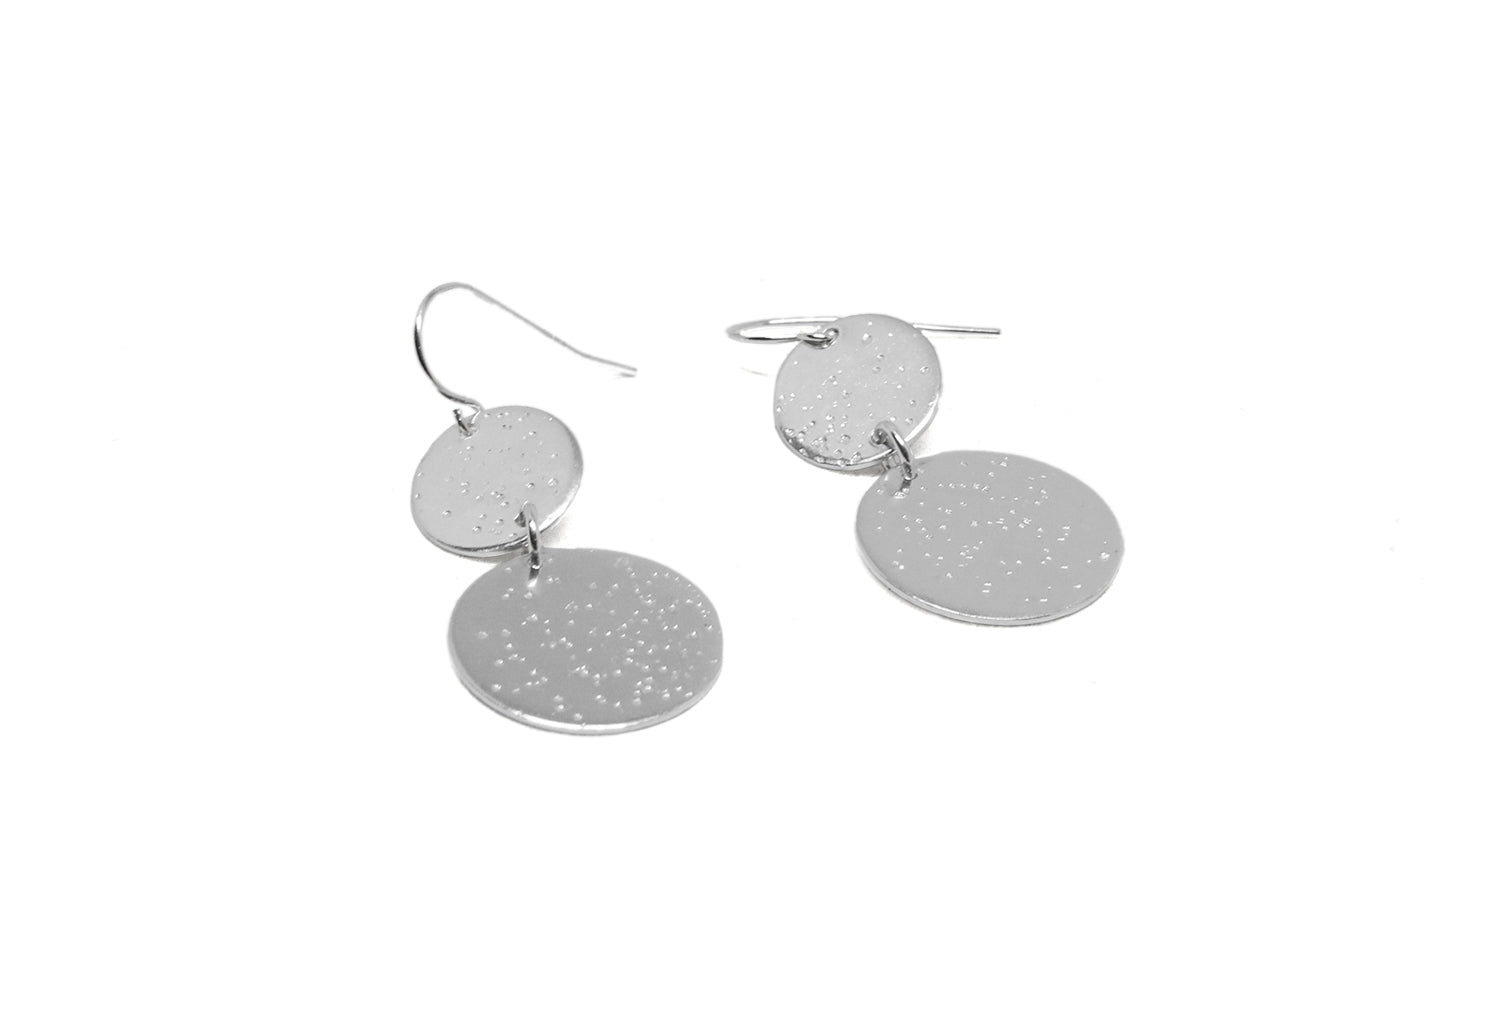 llayers dangly moon texture earrings silver- boucles d'oreilles made in france faites main lune argent